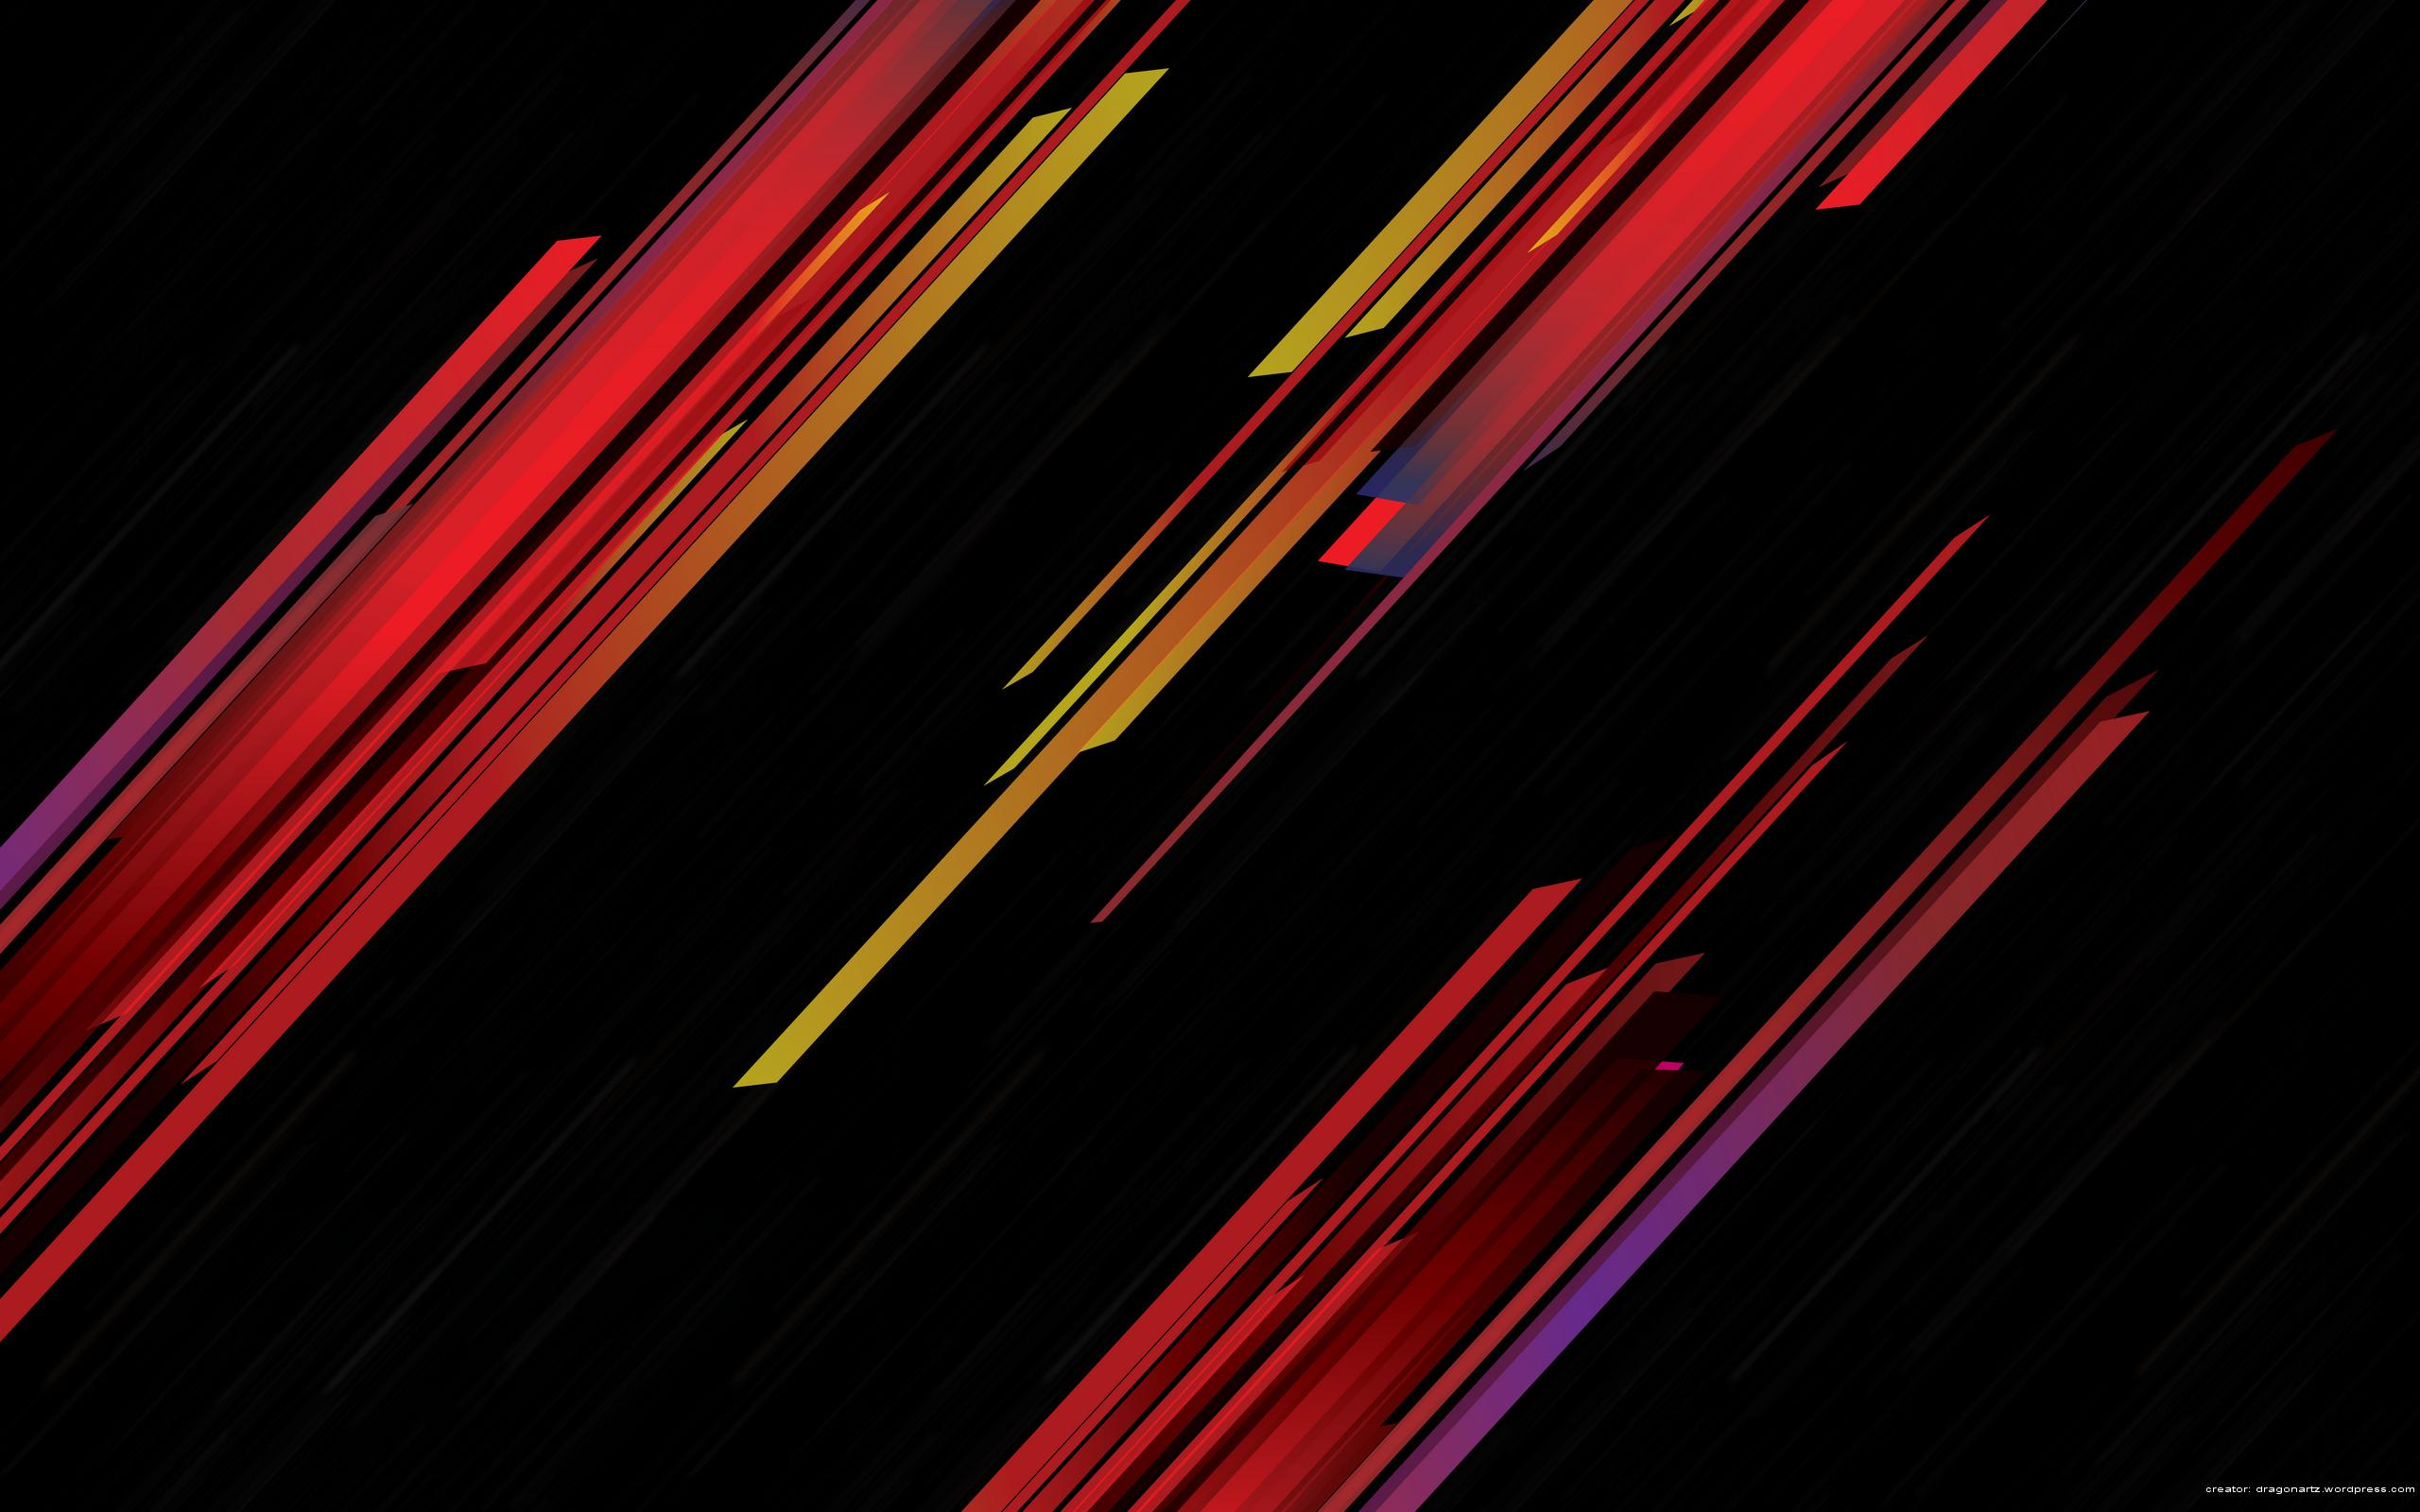 Android wallpaper for amoled displays - Supercar wallpaper hd for android ...